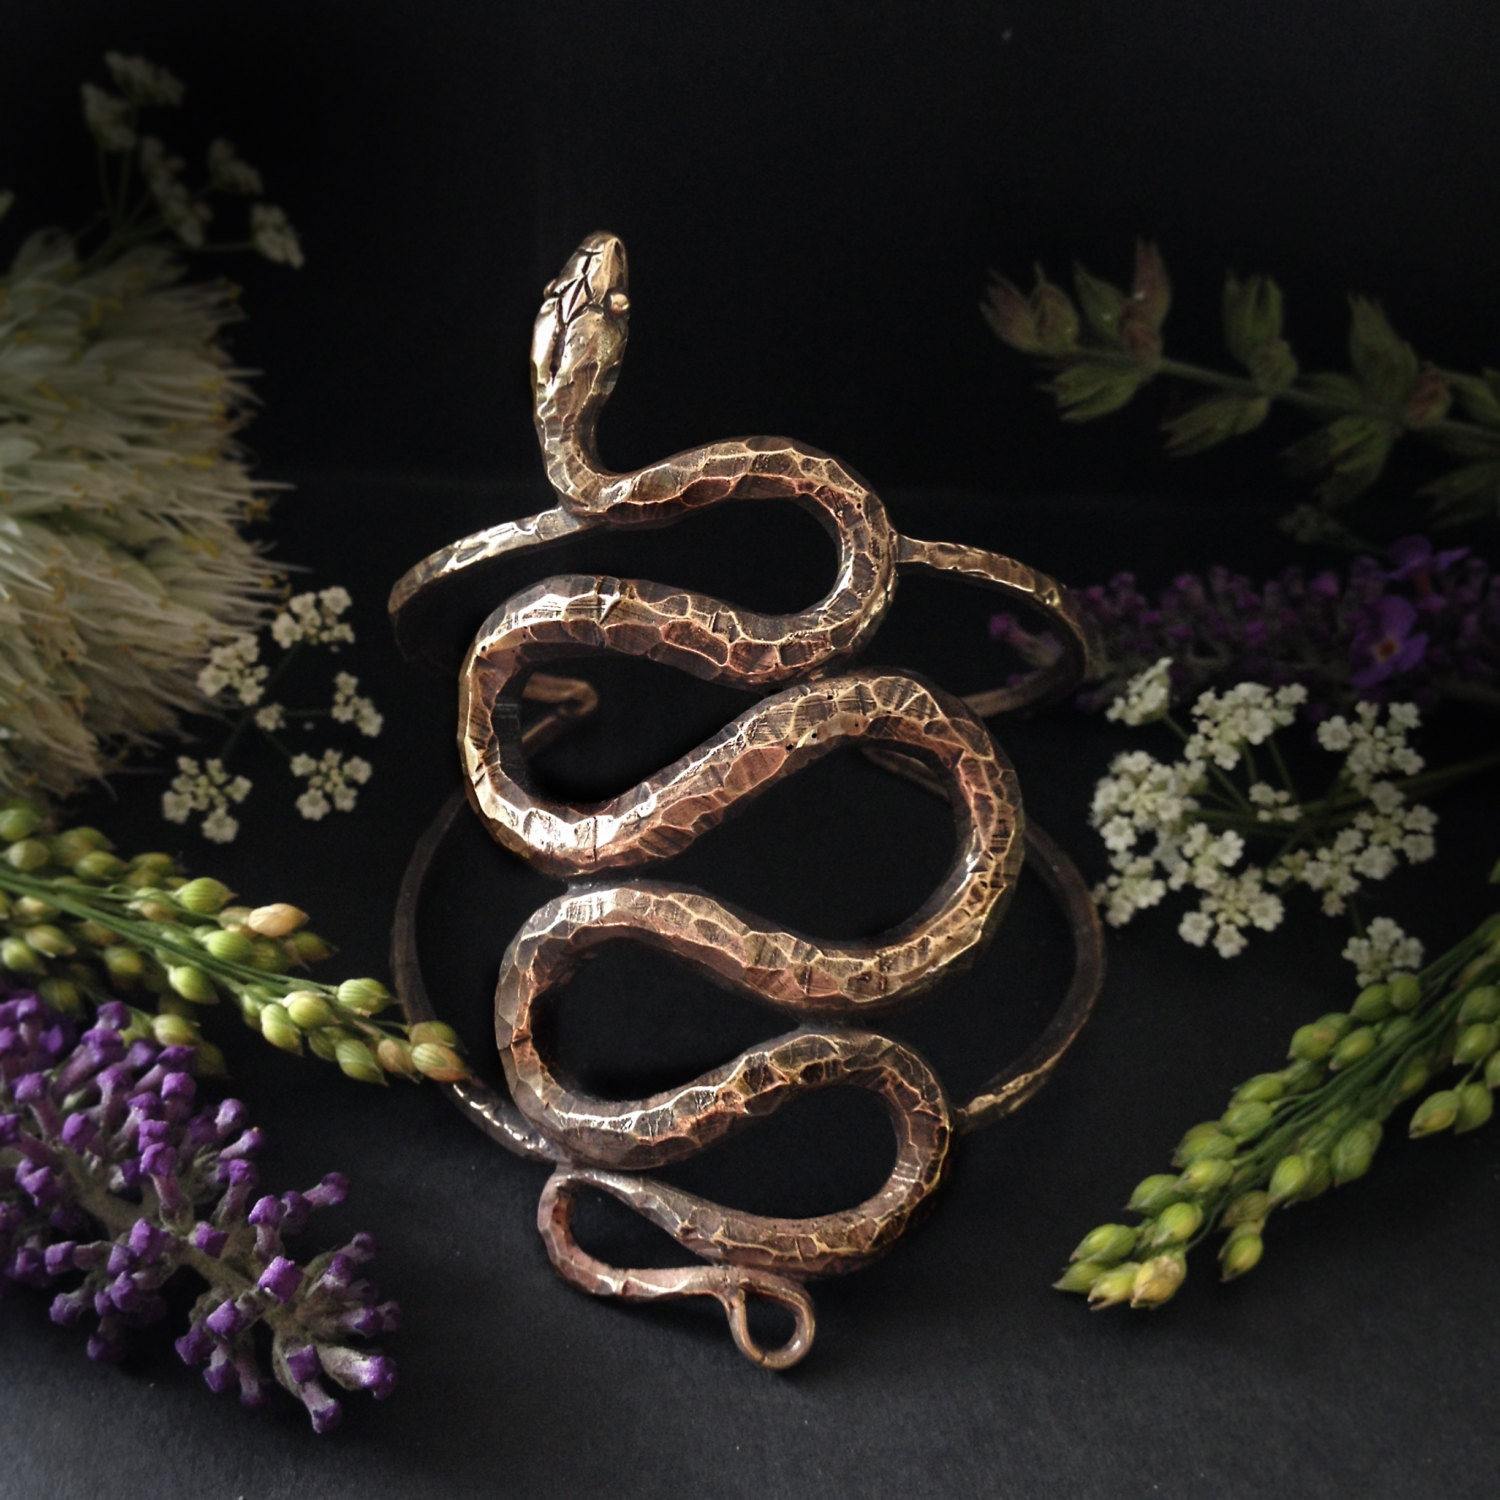 Snake Cuff Inspired By Garden Snakes Asclepius The Serpent